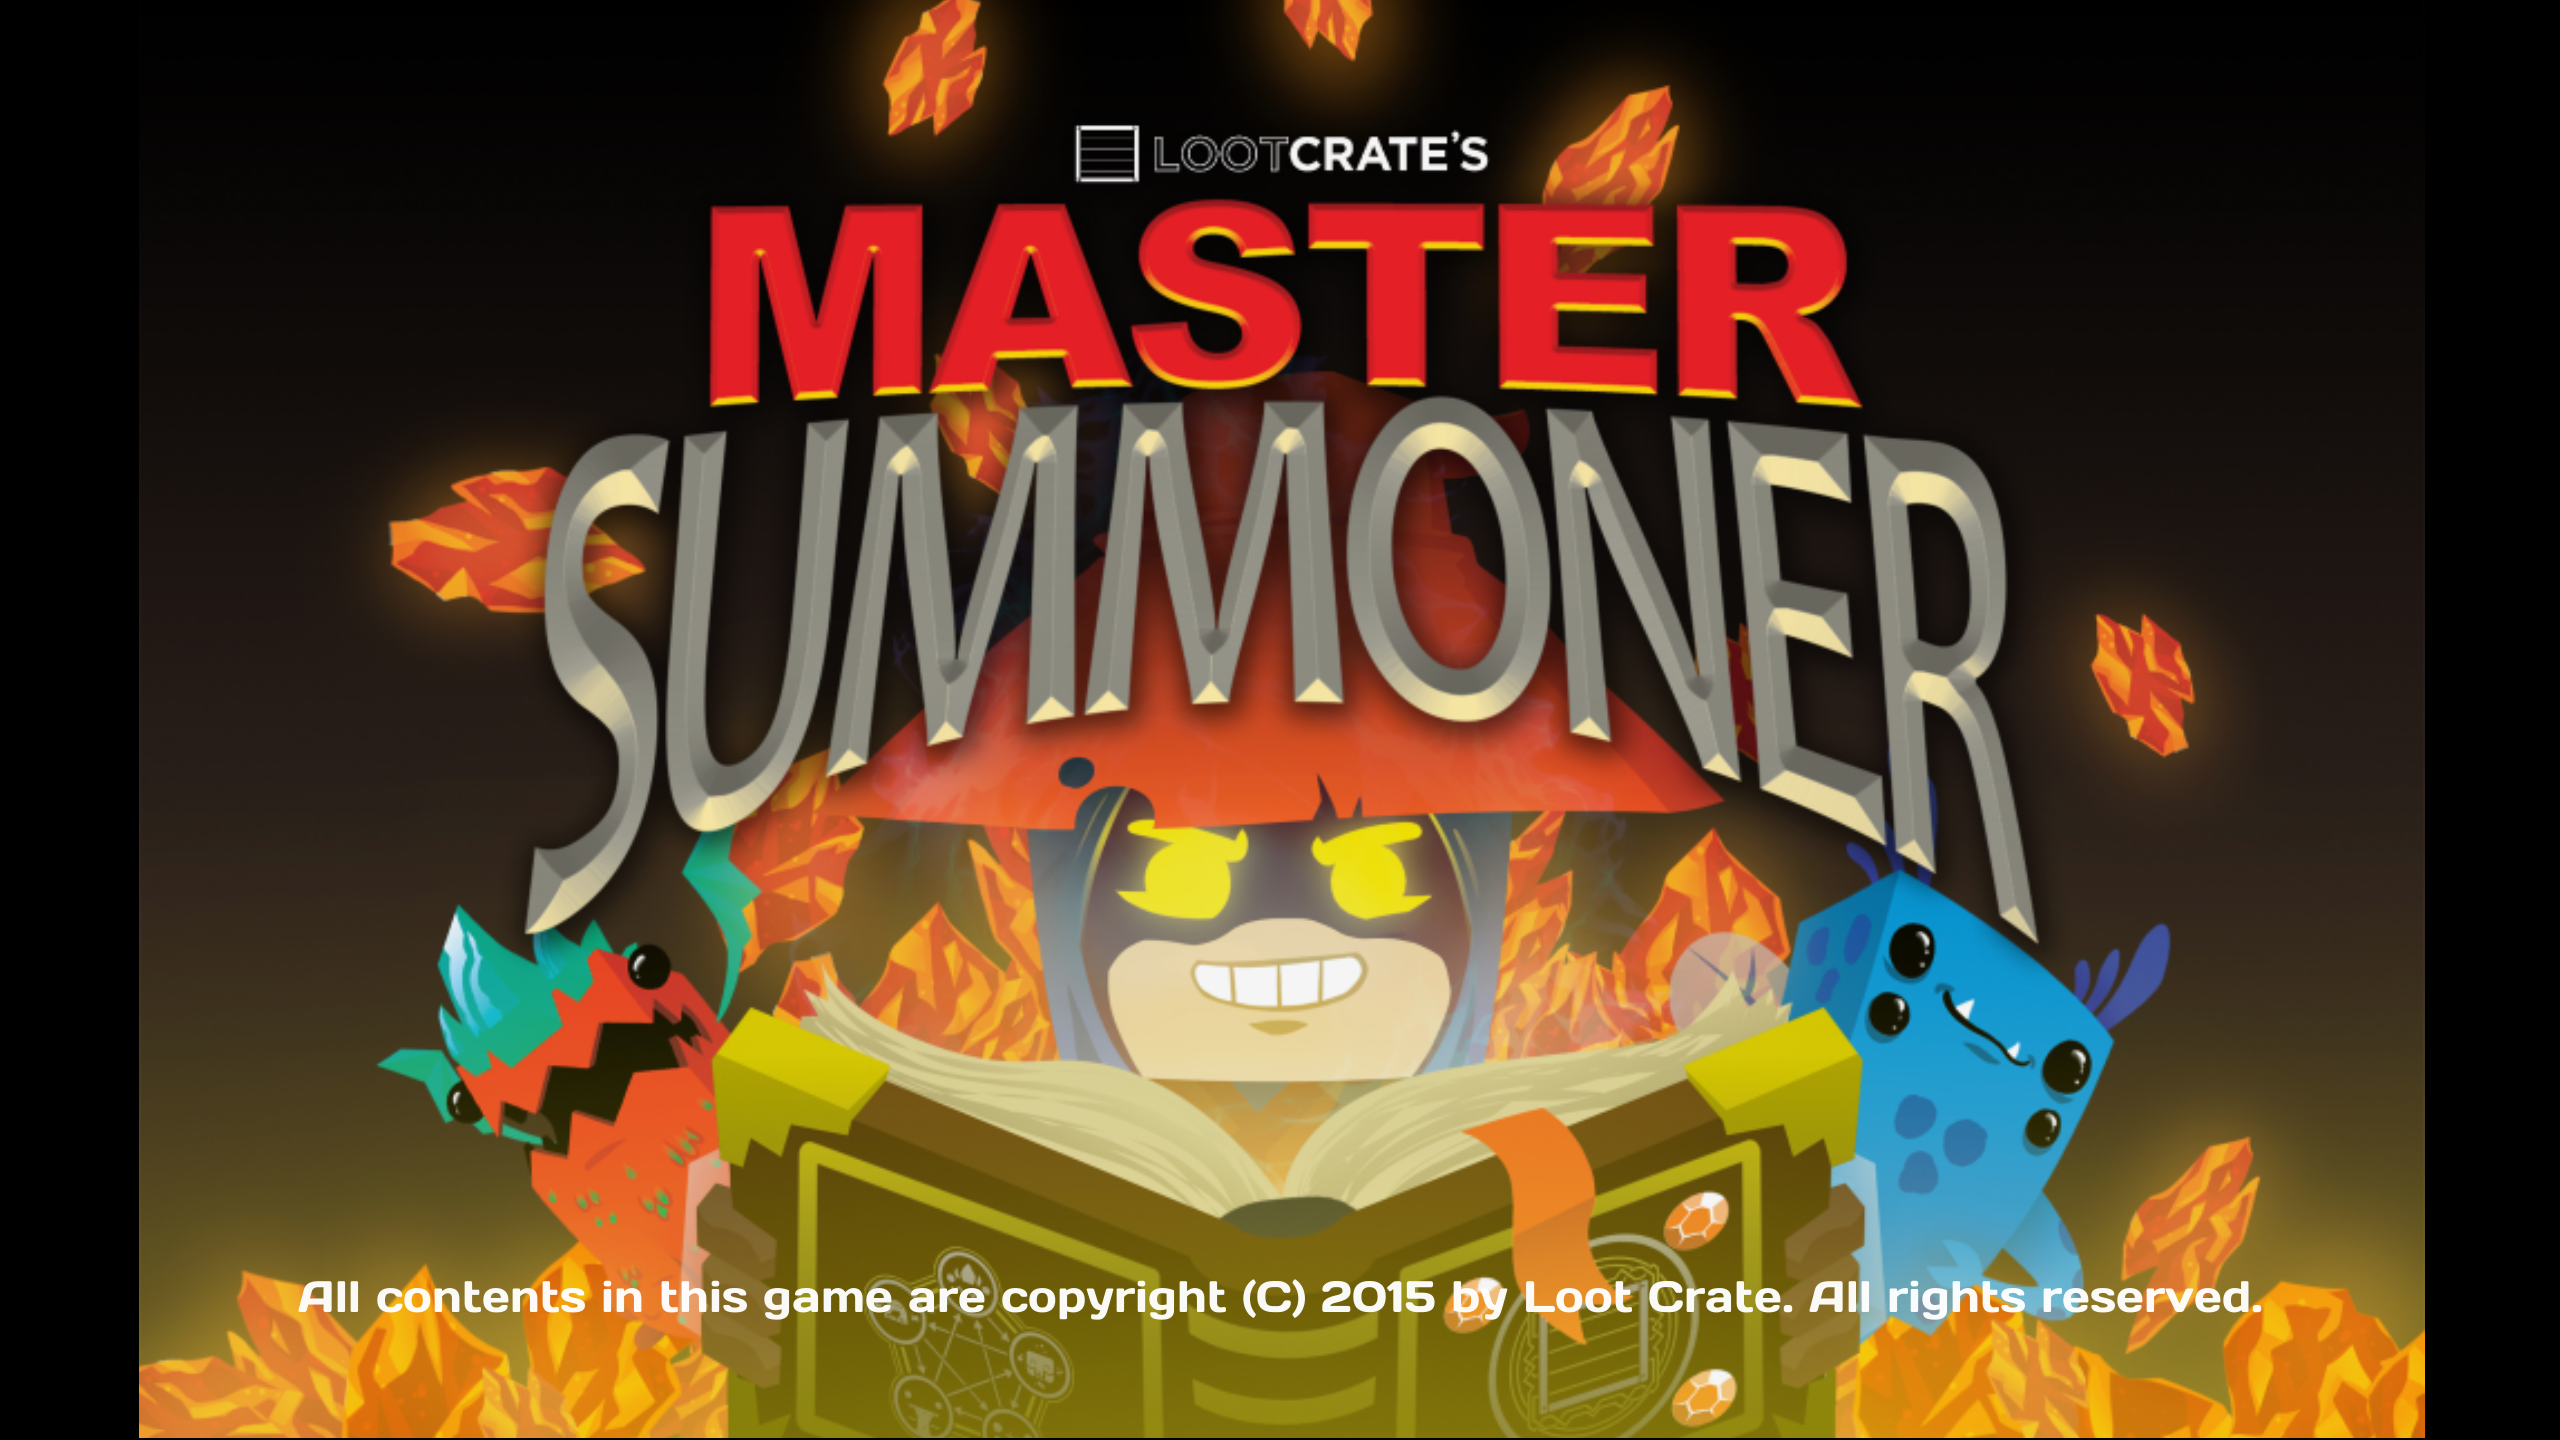 Loot Crate: Master Summoner